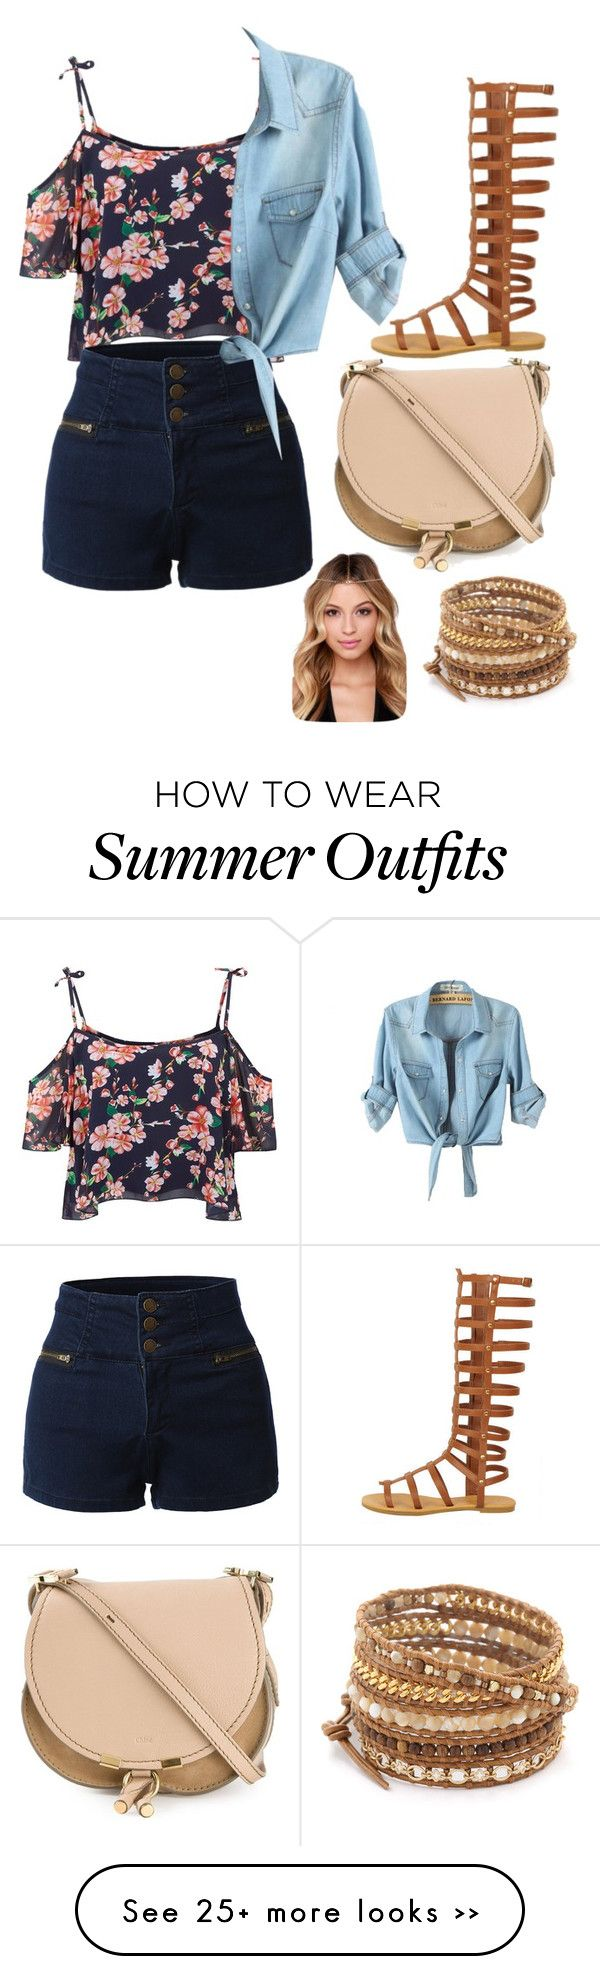 """""""Summer Outfit # 2"""" by kat-civil on Polyvore"""